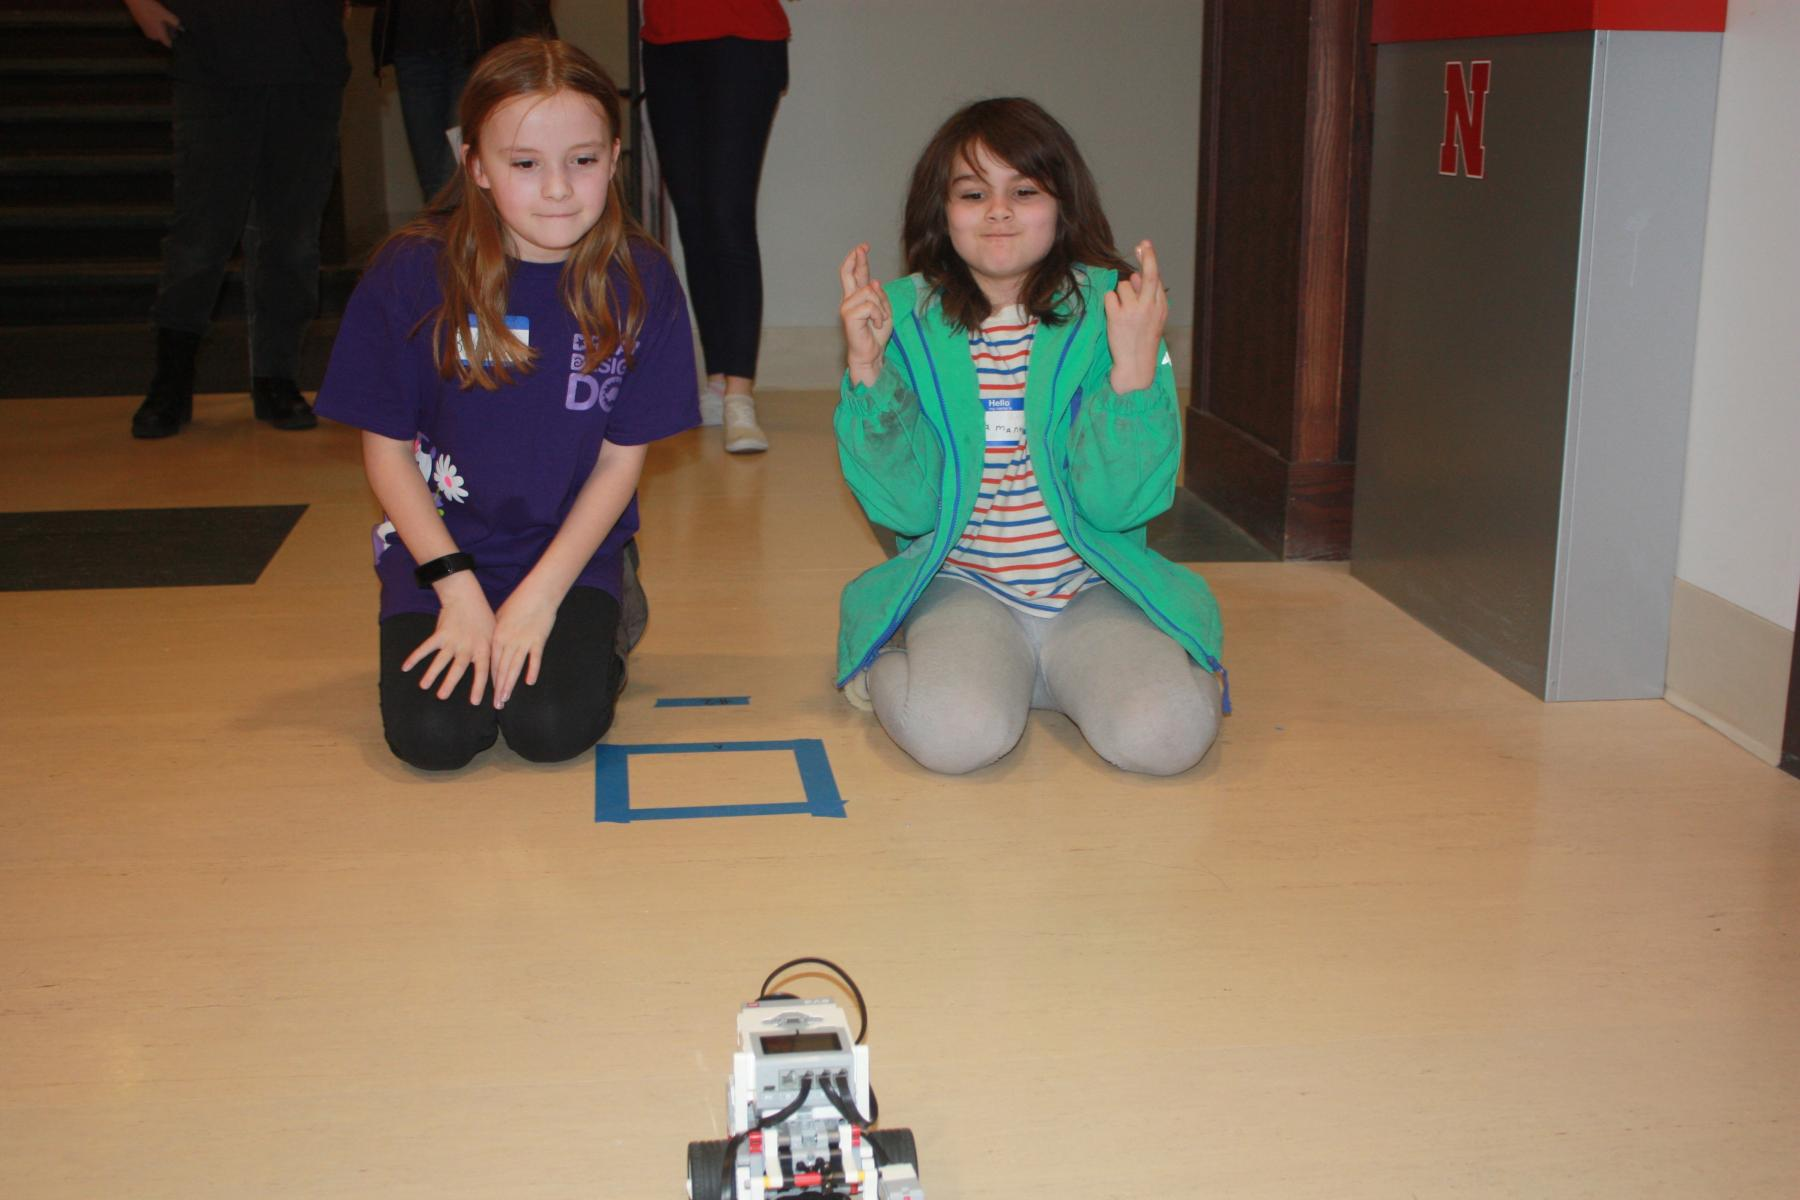 Two Girl Scouts anxiously await successful results in programming their robot.